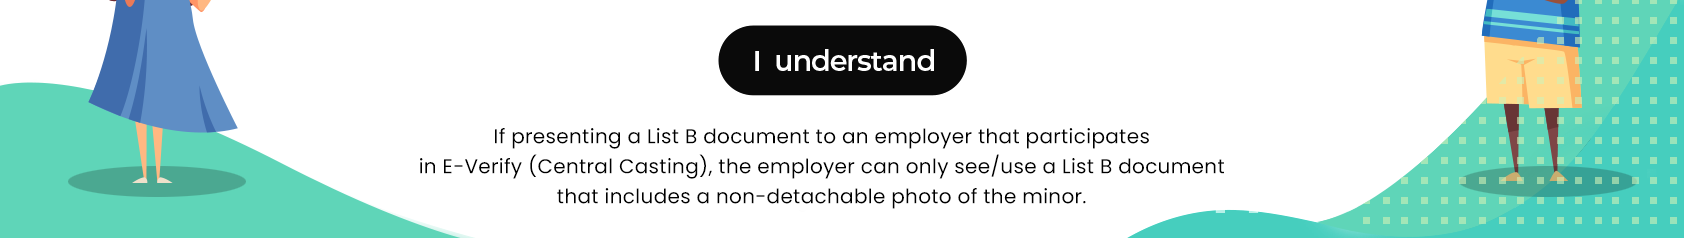 If presenting a List B document to an employer that participates in E-Verify (Central Casting), the employer can only see/use a List B document that includes a non-detachable photo of the minor.